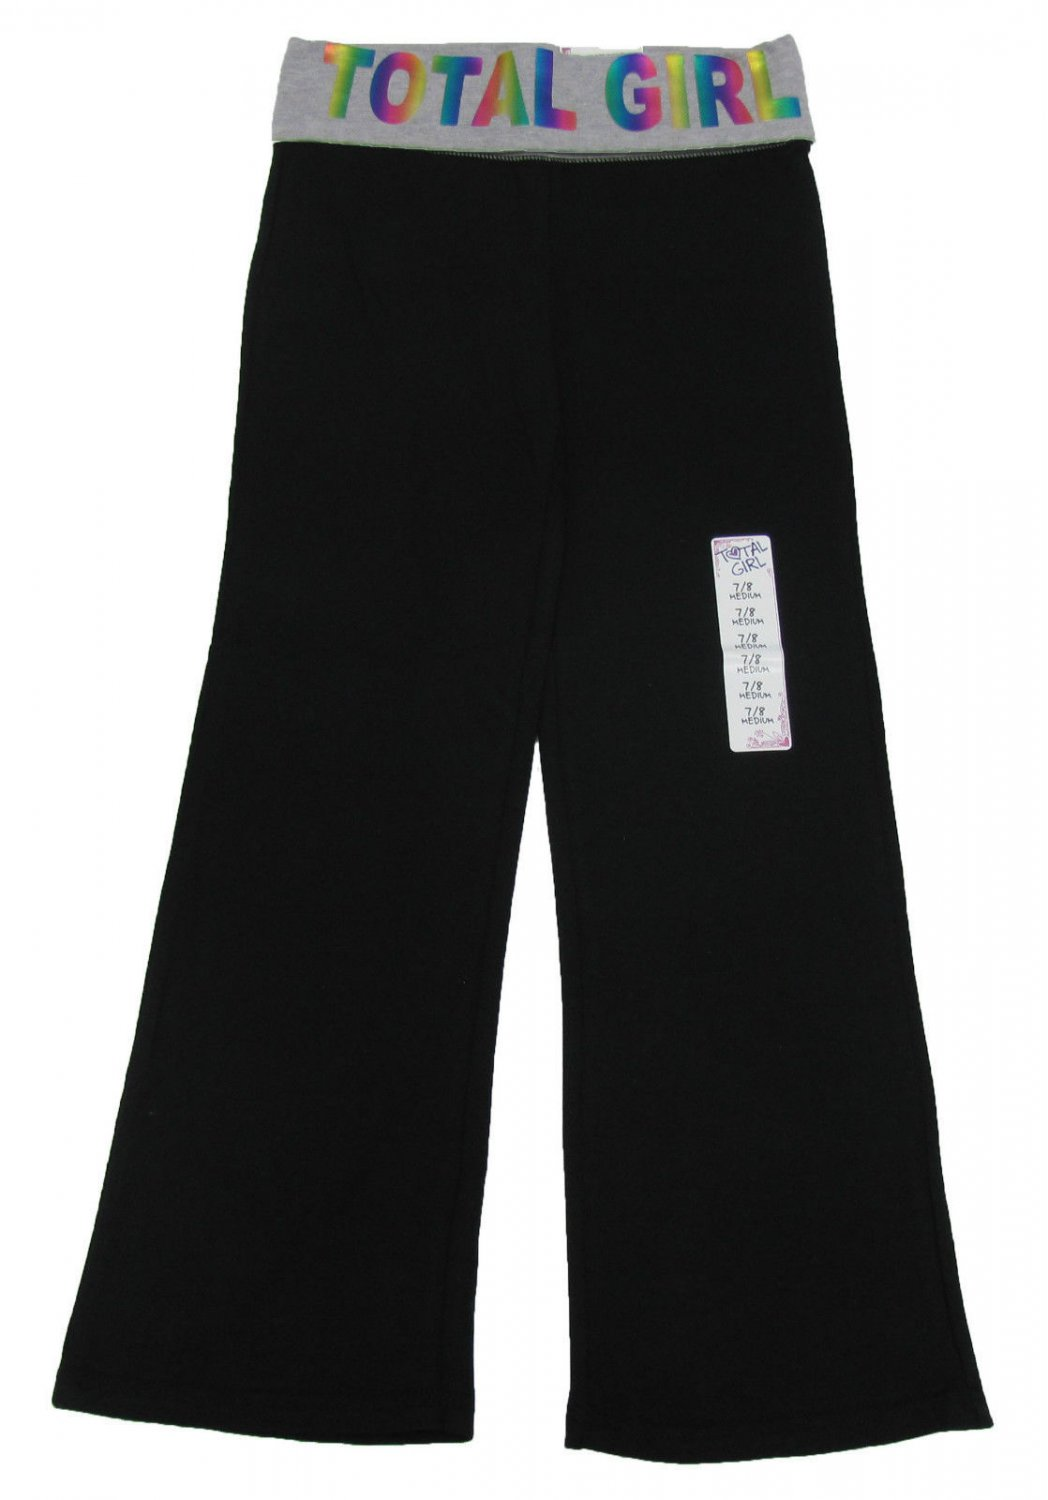 Total Girl size XS 4-5 Black Yoga Pants with Fold Over Waistband Kids New